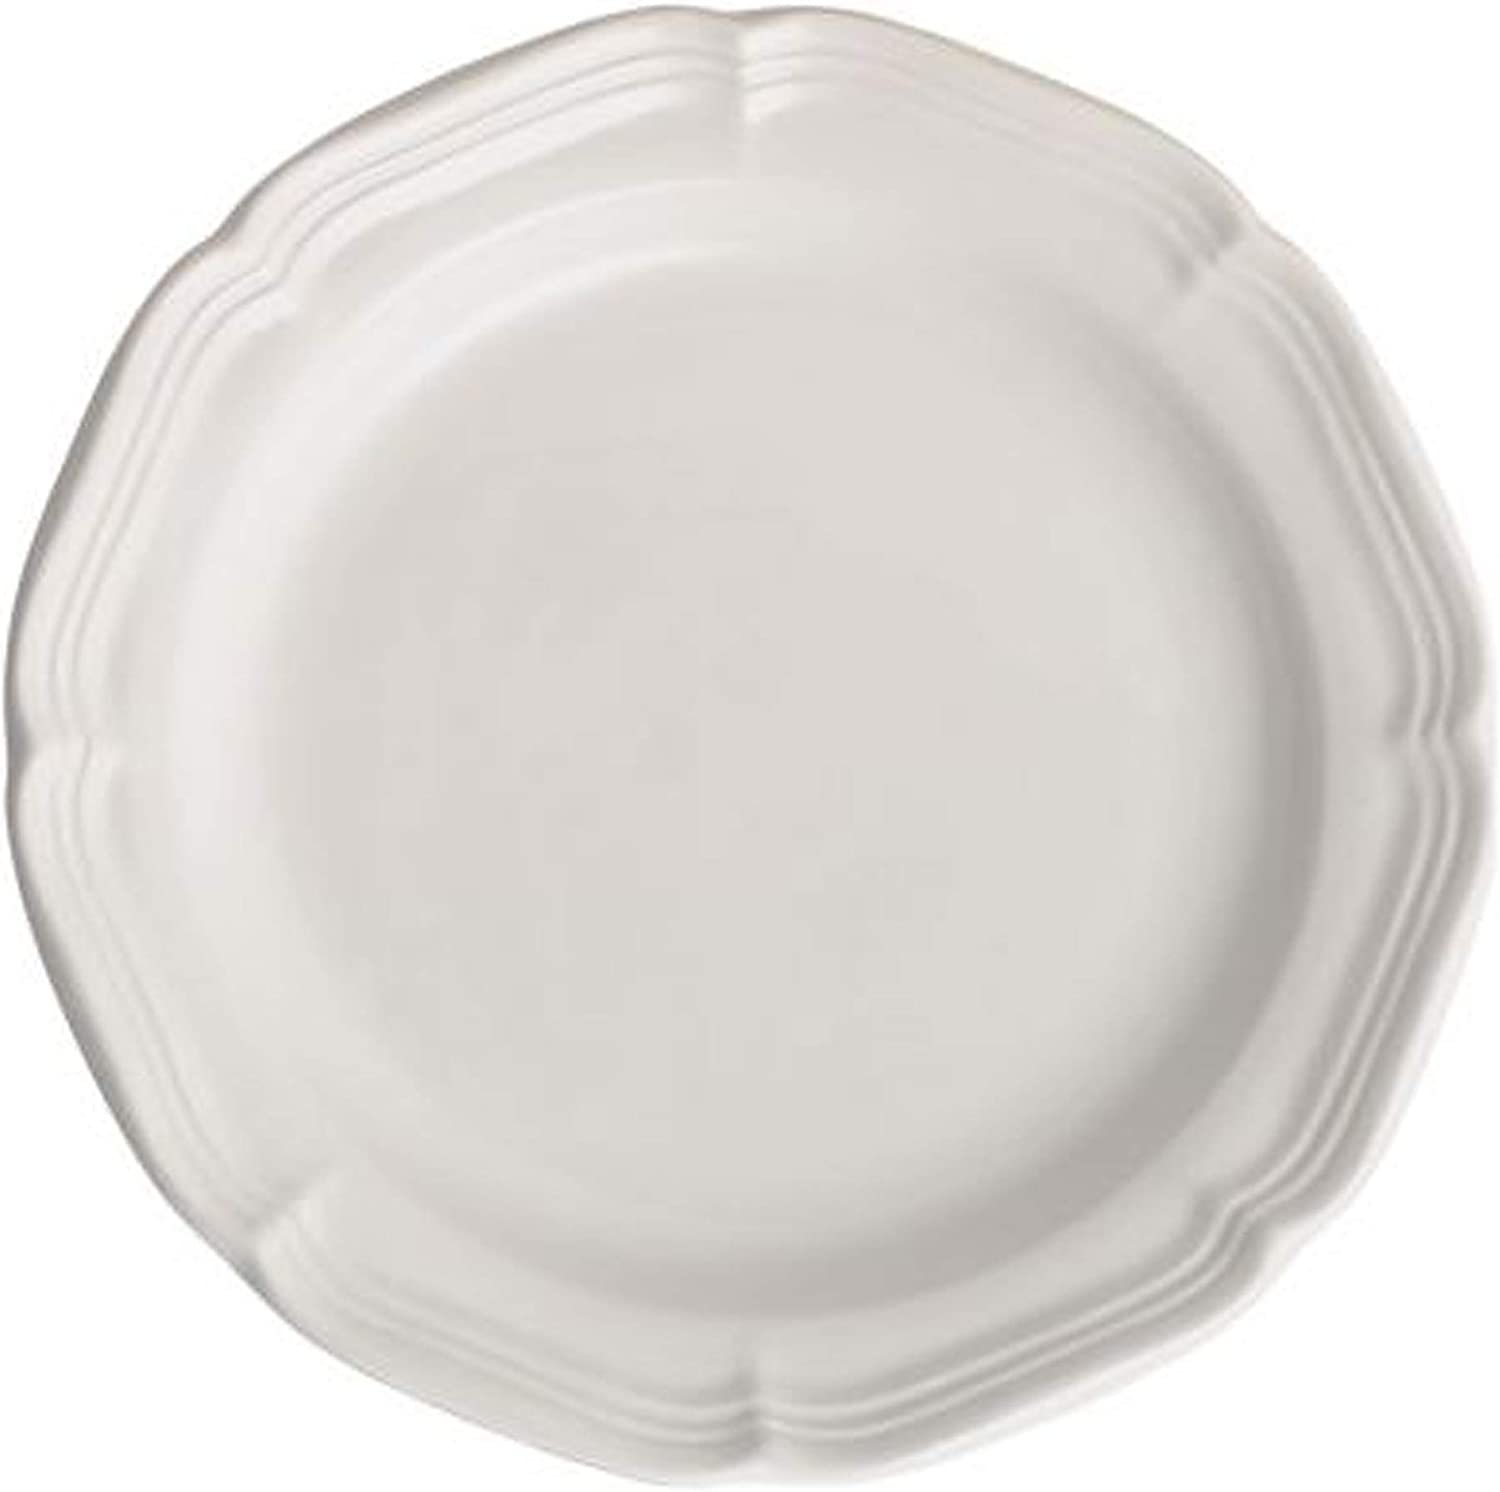 Mikasa French Country Ranking TOP20 Salad Plate White F9000-202 8